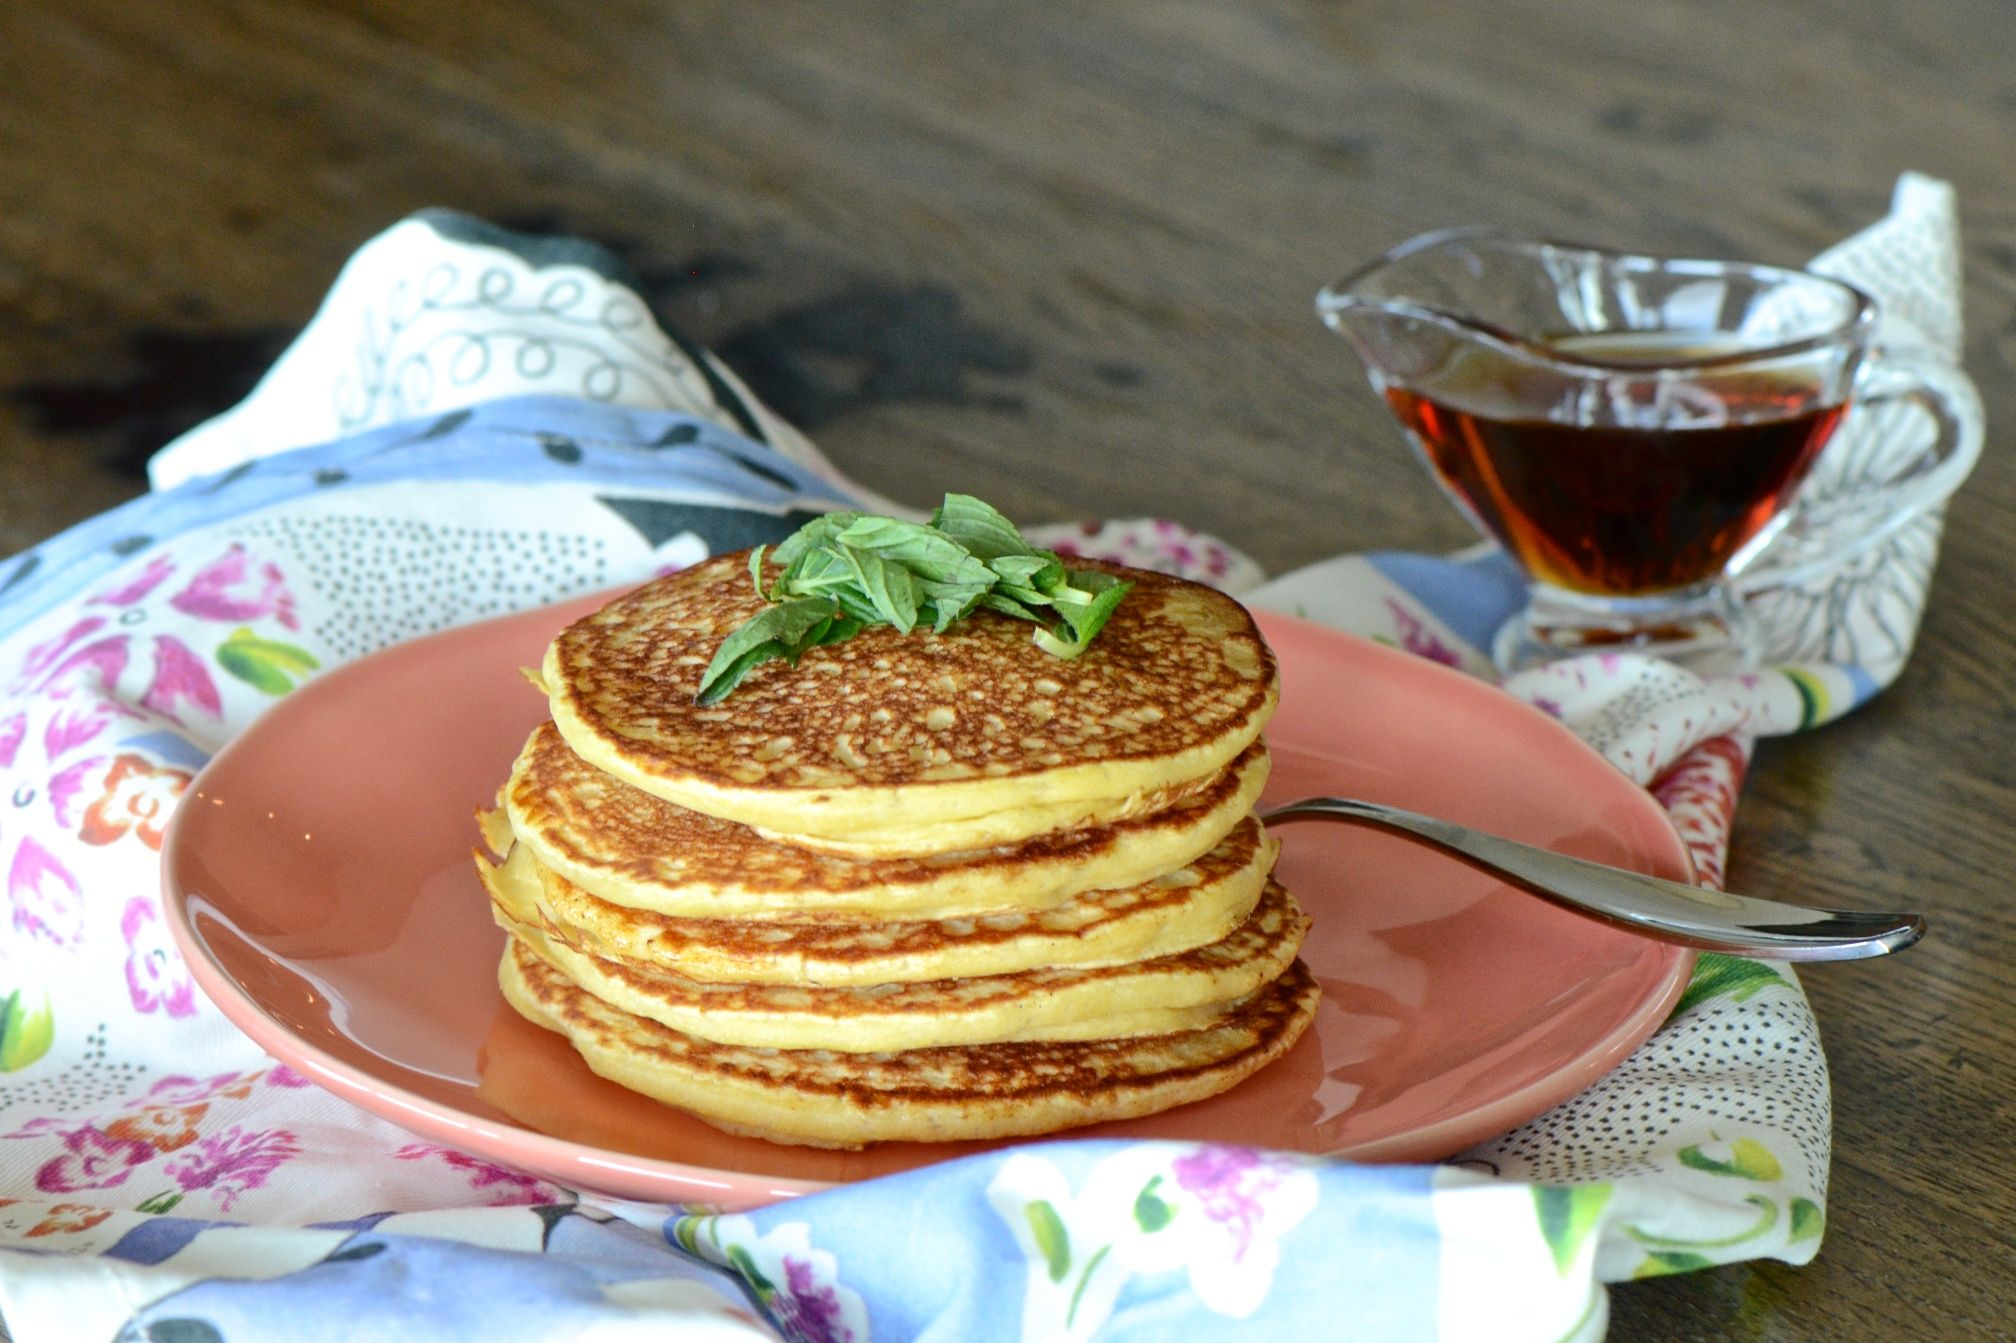 Fermented Pancakes Vegan No Oil No Eggs No Dairy No Sugar Try With Whole Wheat Flour In Place Of White Whole Foods Vegan Pancakes Vegan Pancake Recipes